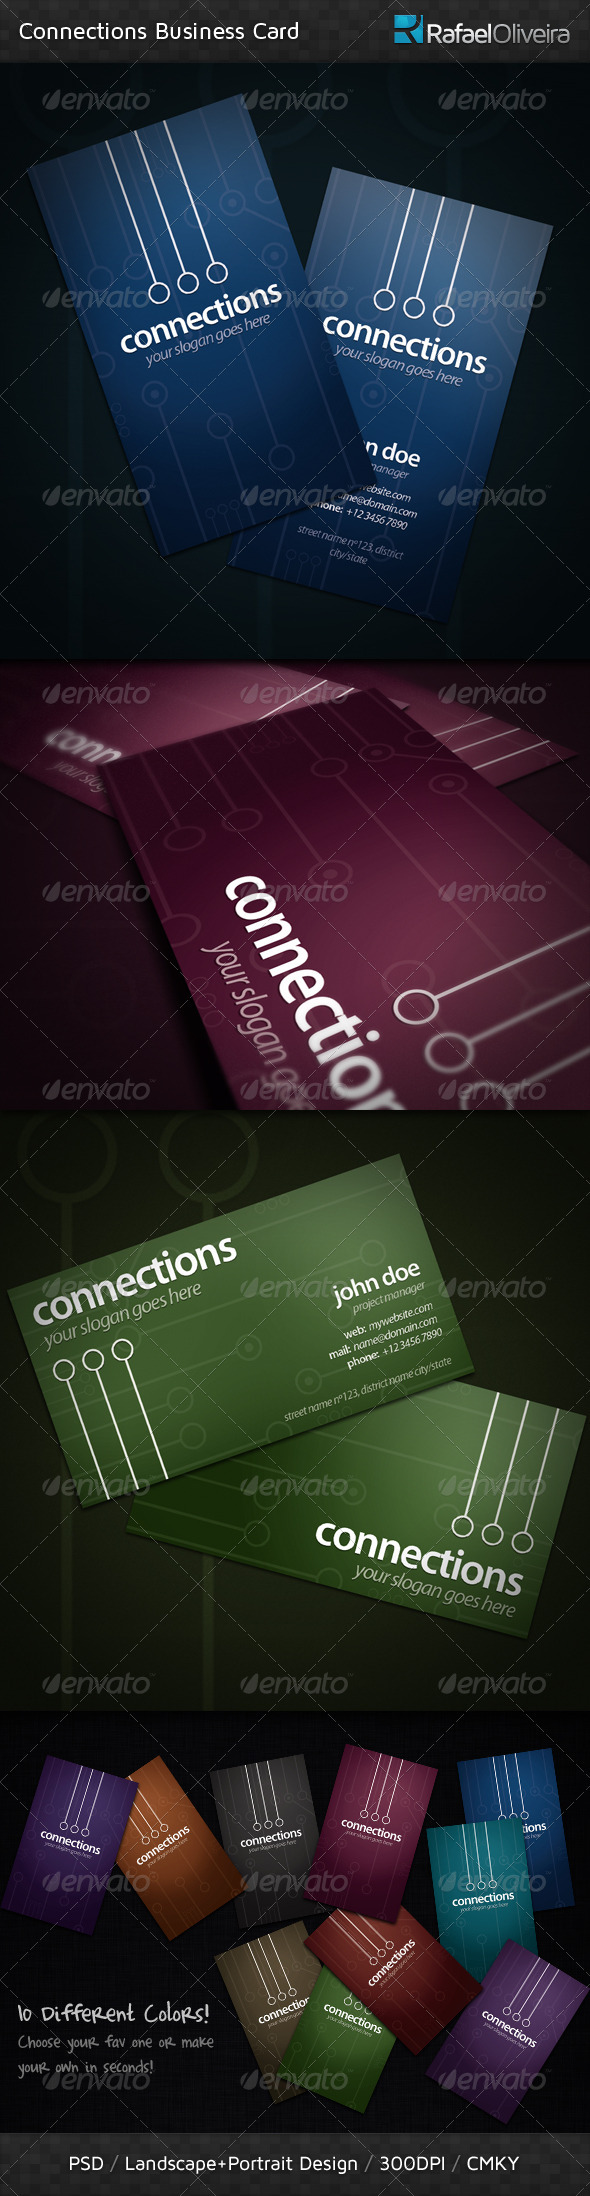 Connections Business Card - Corporate Business Cards